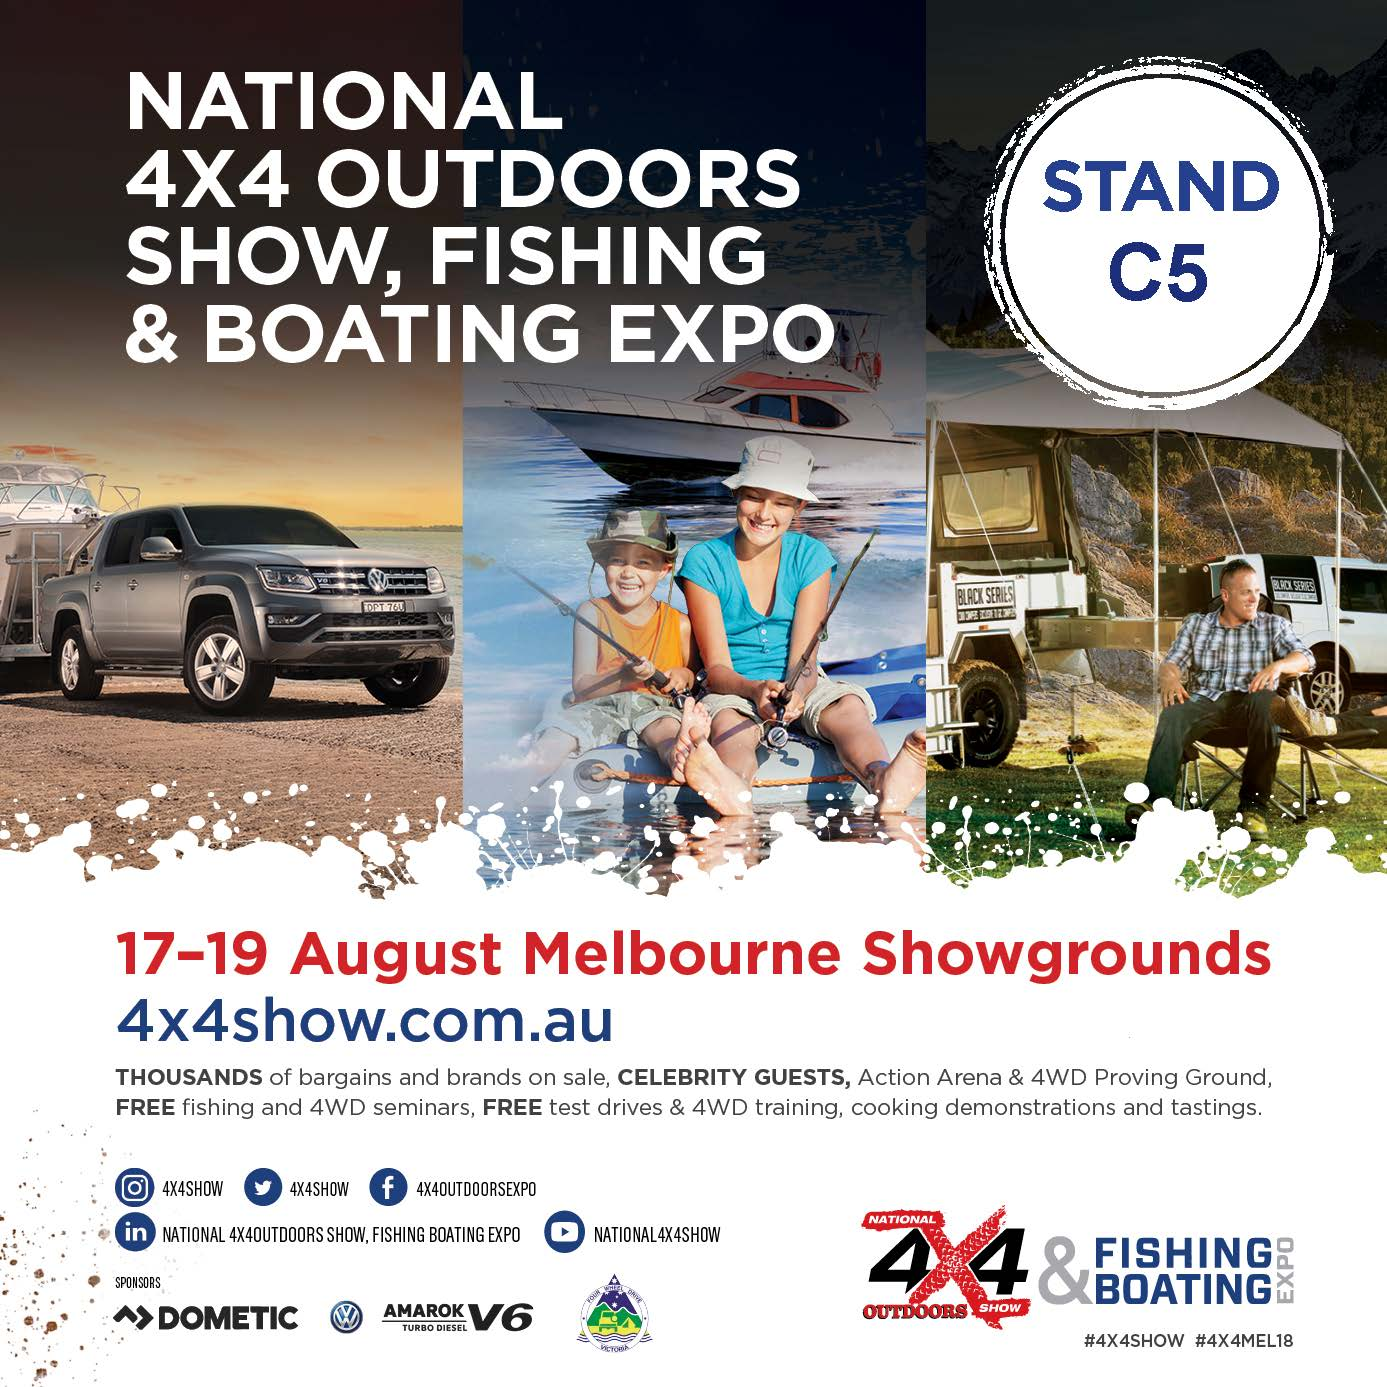 National 4x4 Outdoor Show, Fishing & Boating Expo